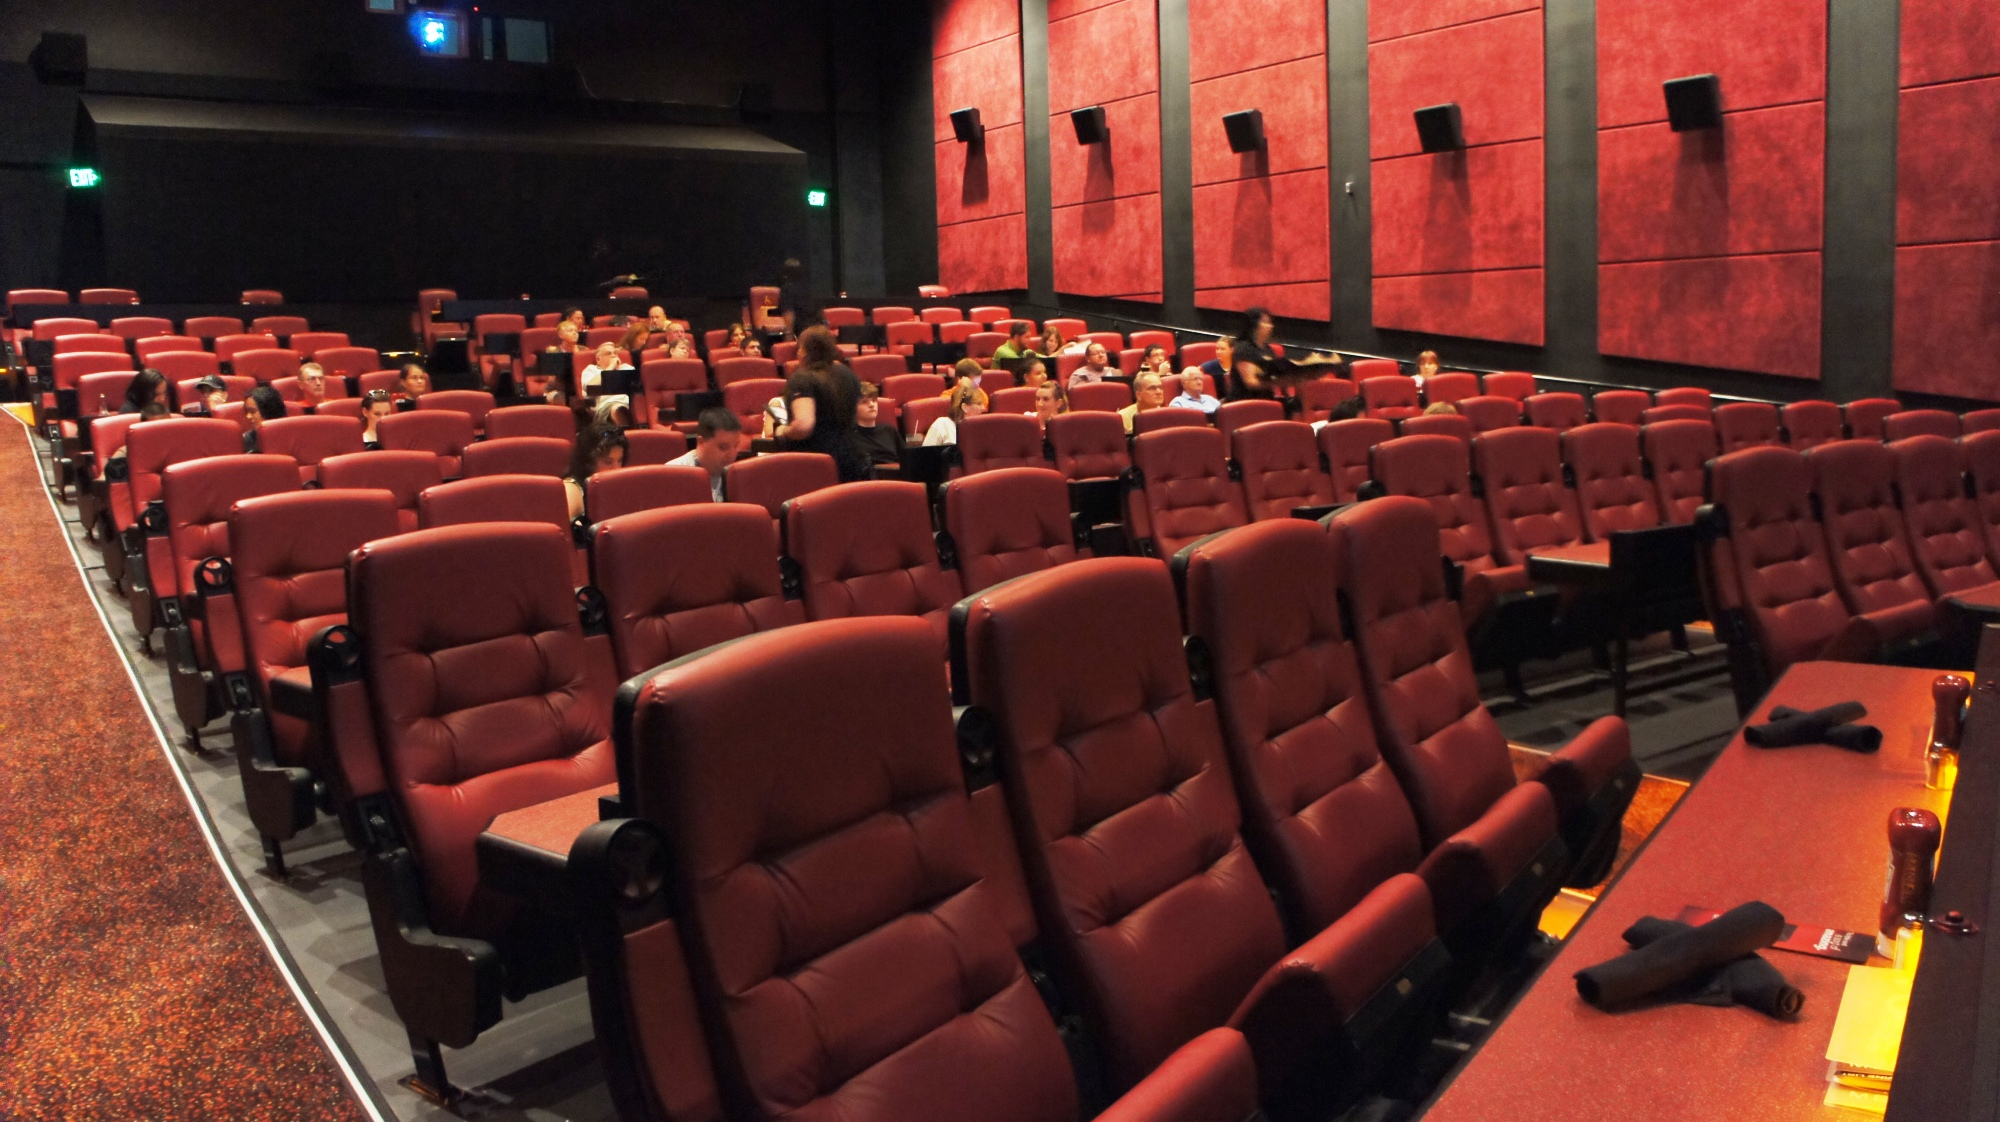 The ultimate spot to catch a newly released movie, the AMC at Pacific Place features 11 state-of-the-art auditoriums with wall-towall screens, digital surround sound and stadium-style seating.